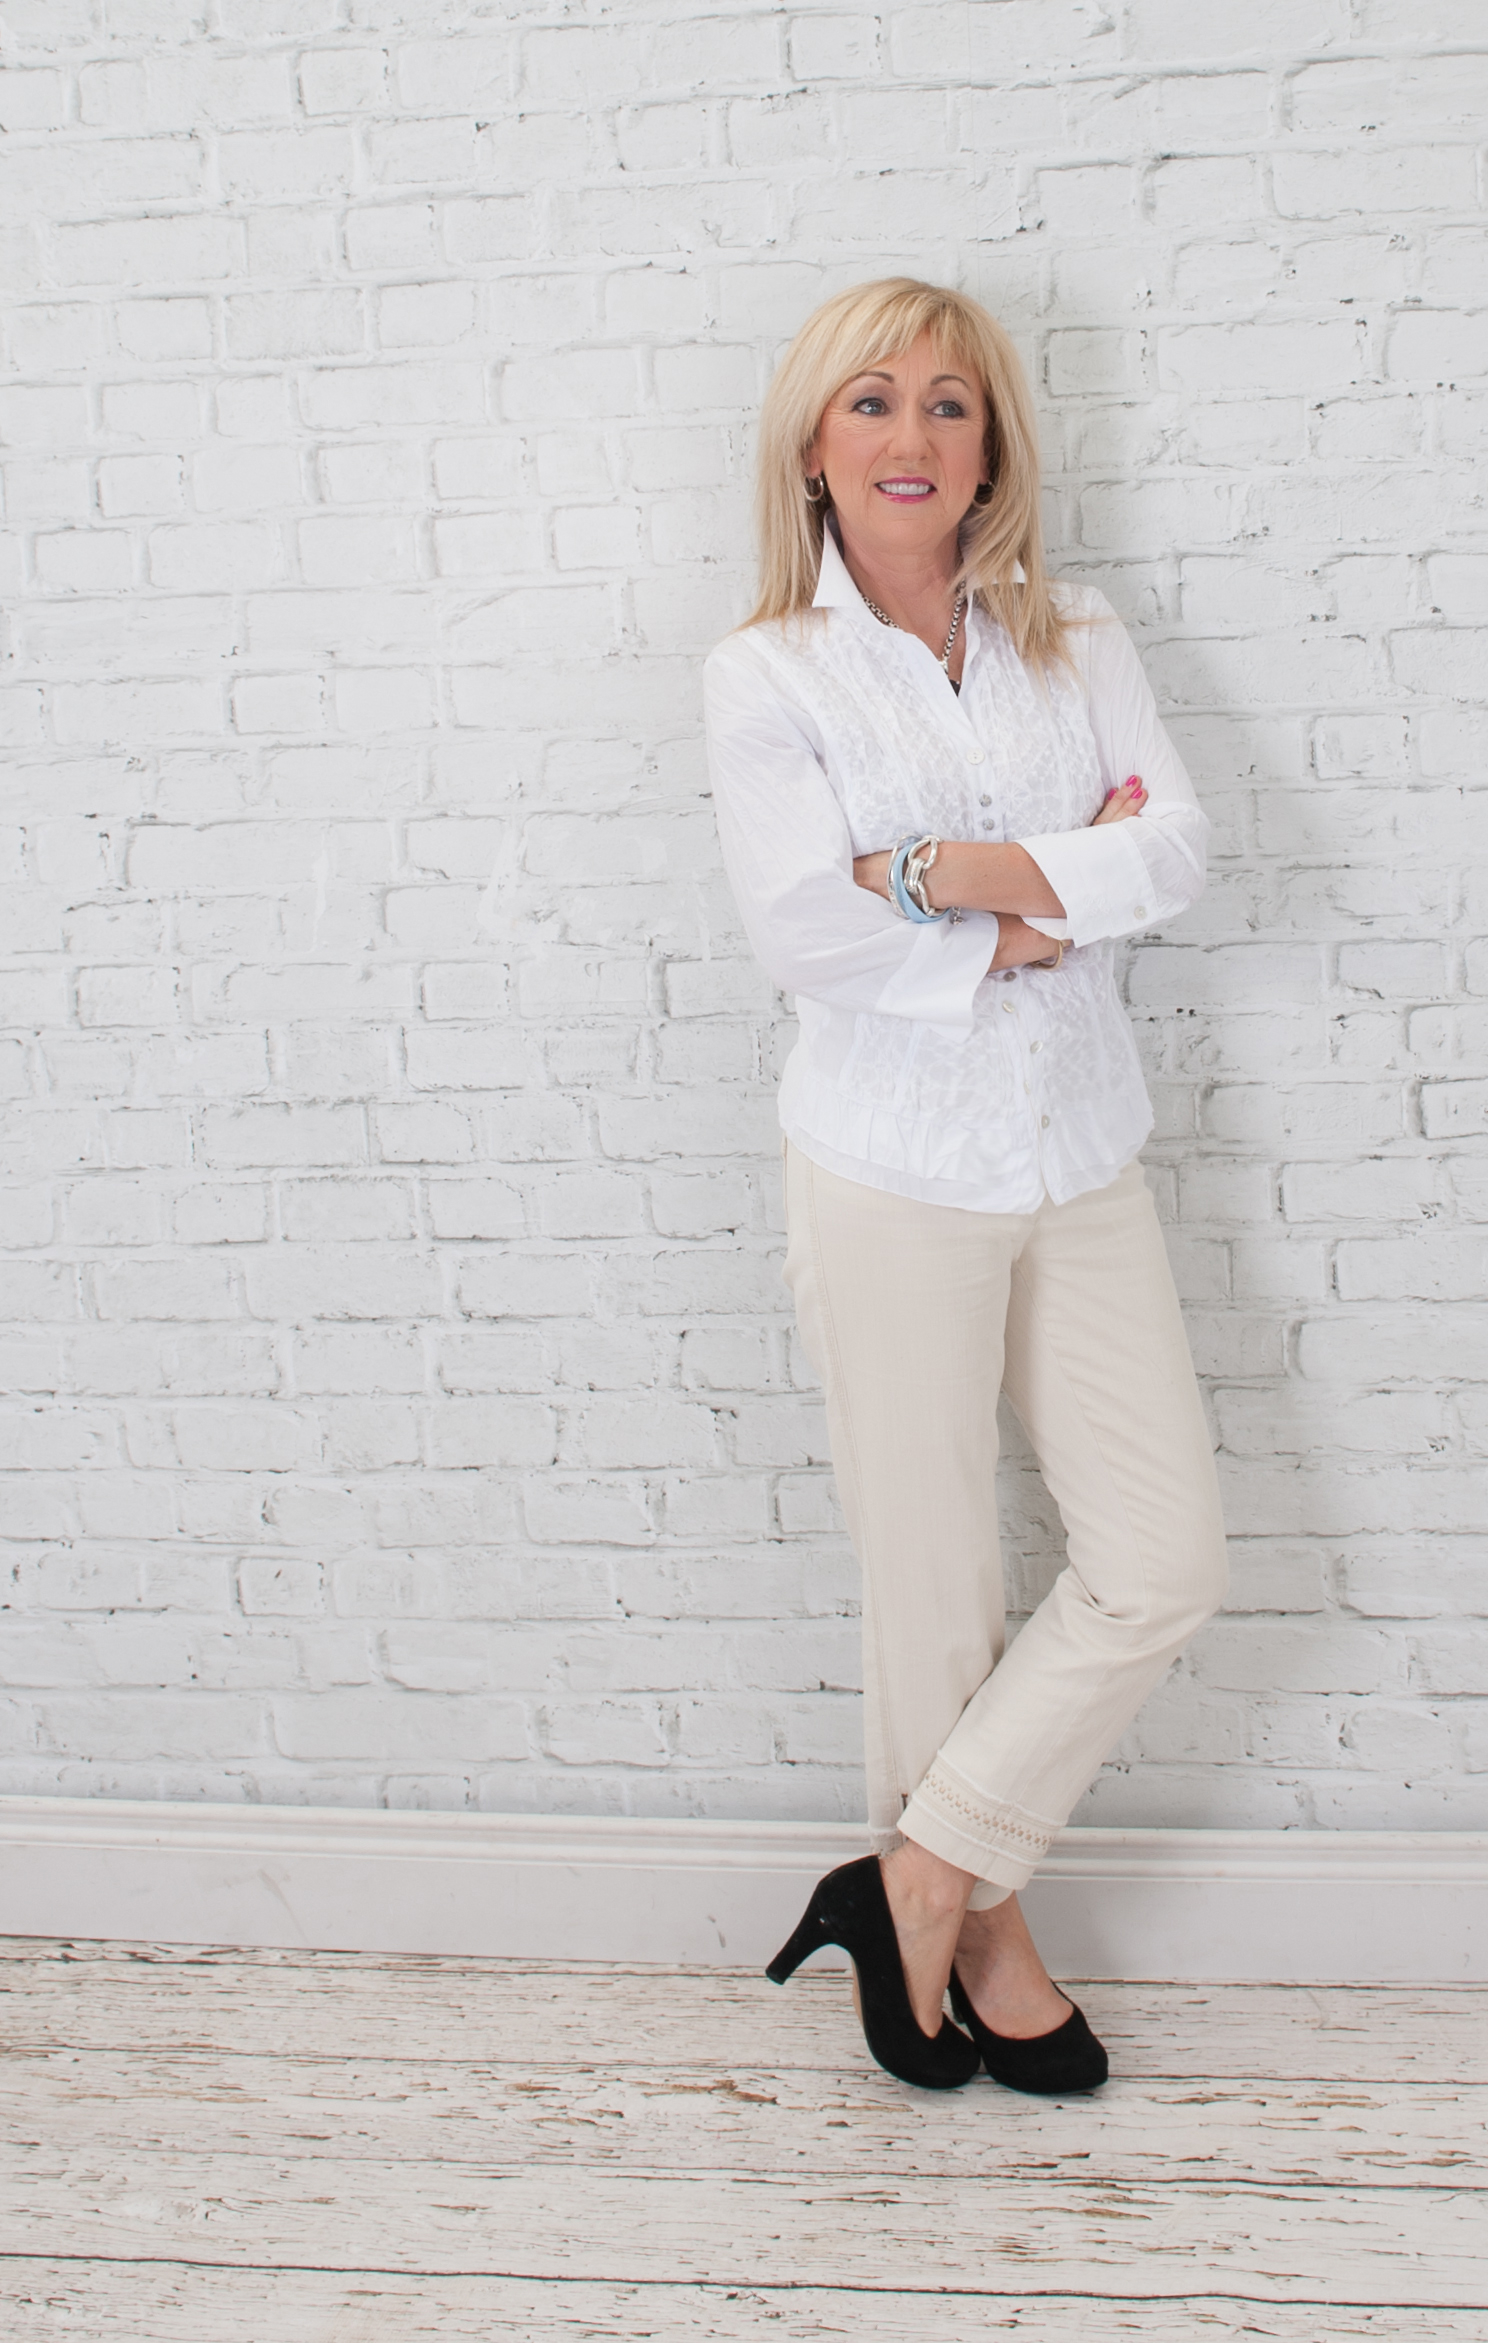 Deidre Maguire, Deirdre Maguire.com fasterEFT EFT Tapping stress suicide fears phobias anxiety